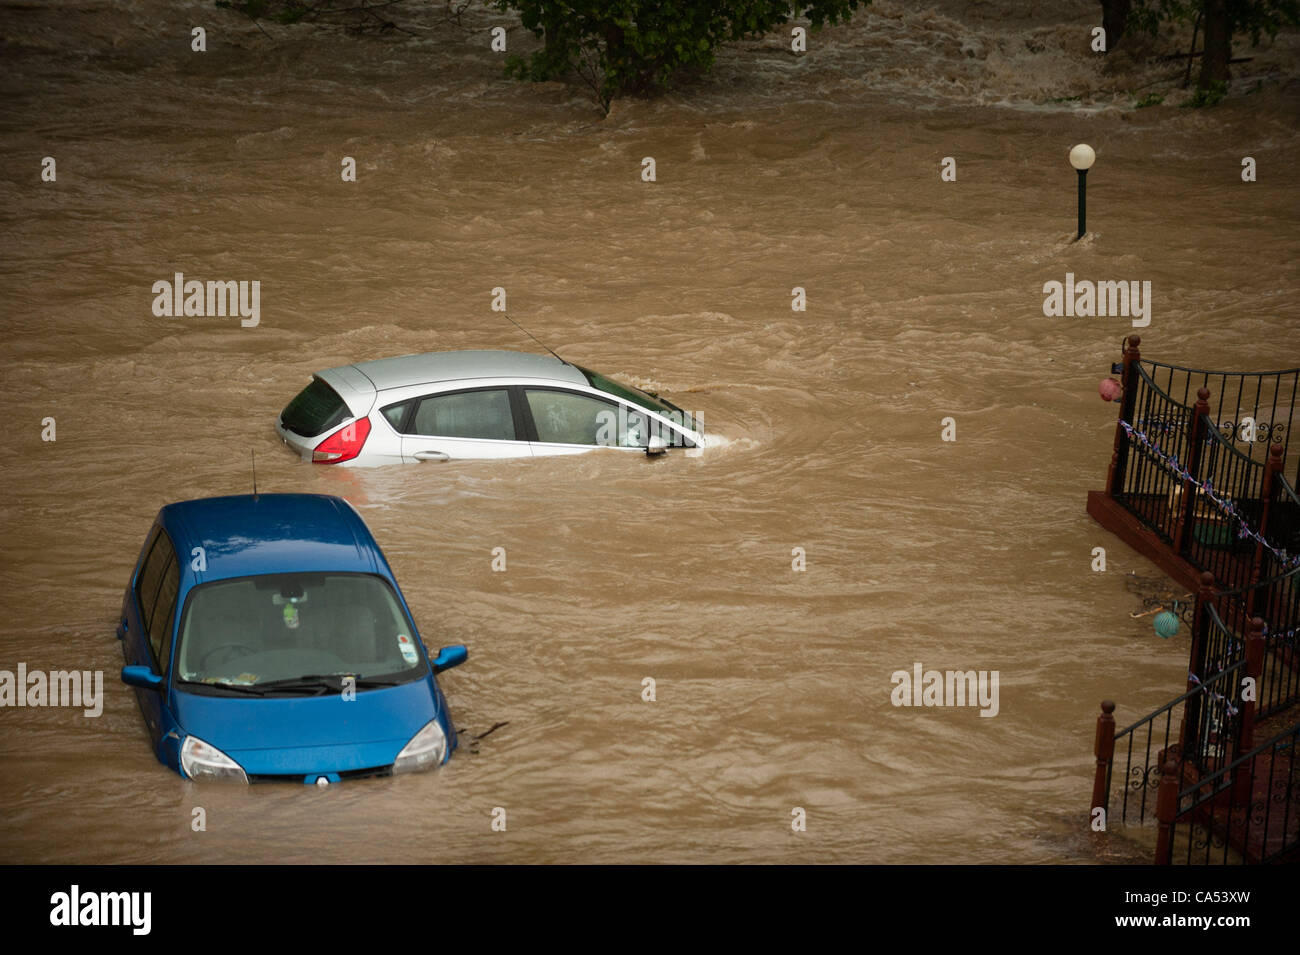 Ceredigion, Wales, UK. Saturday June 9 2012. Caravans and cars submerged by the waters of the River Leri at the Stock Photo